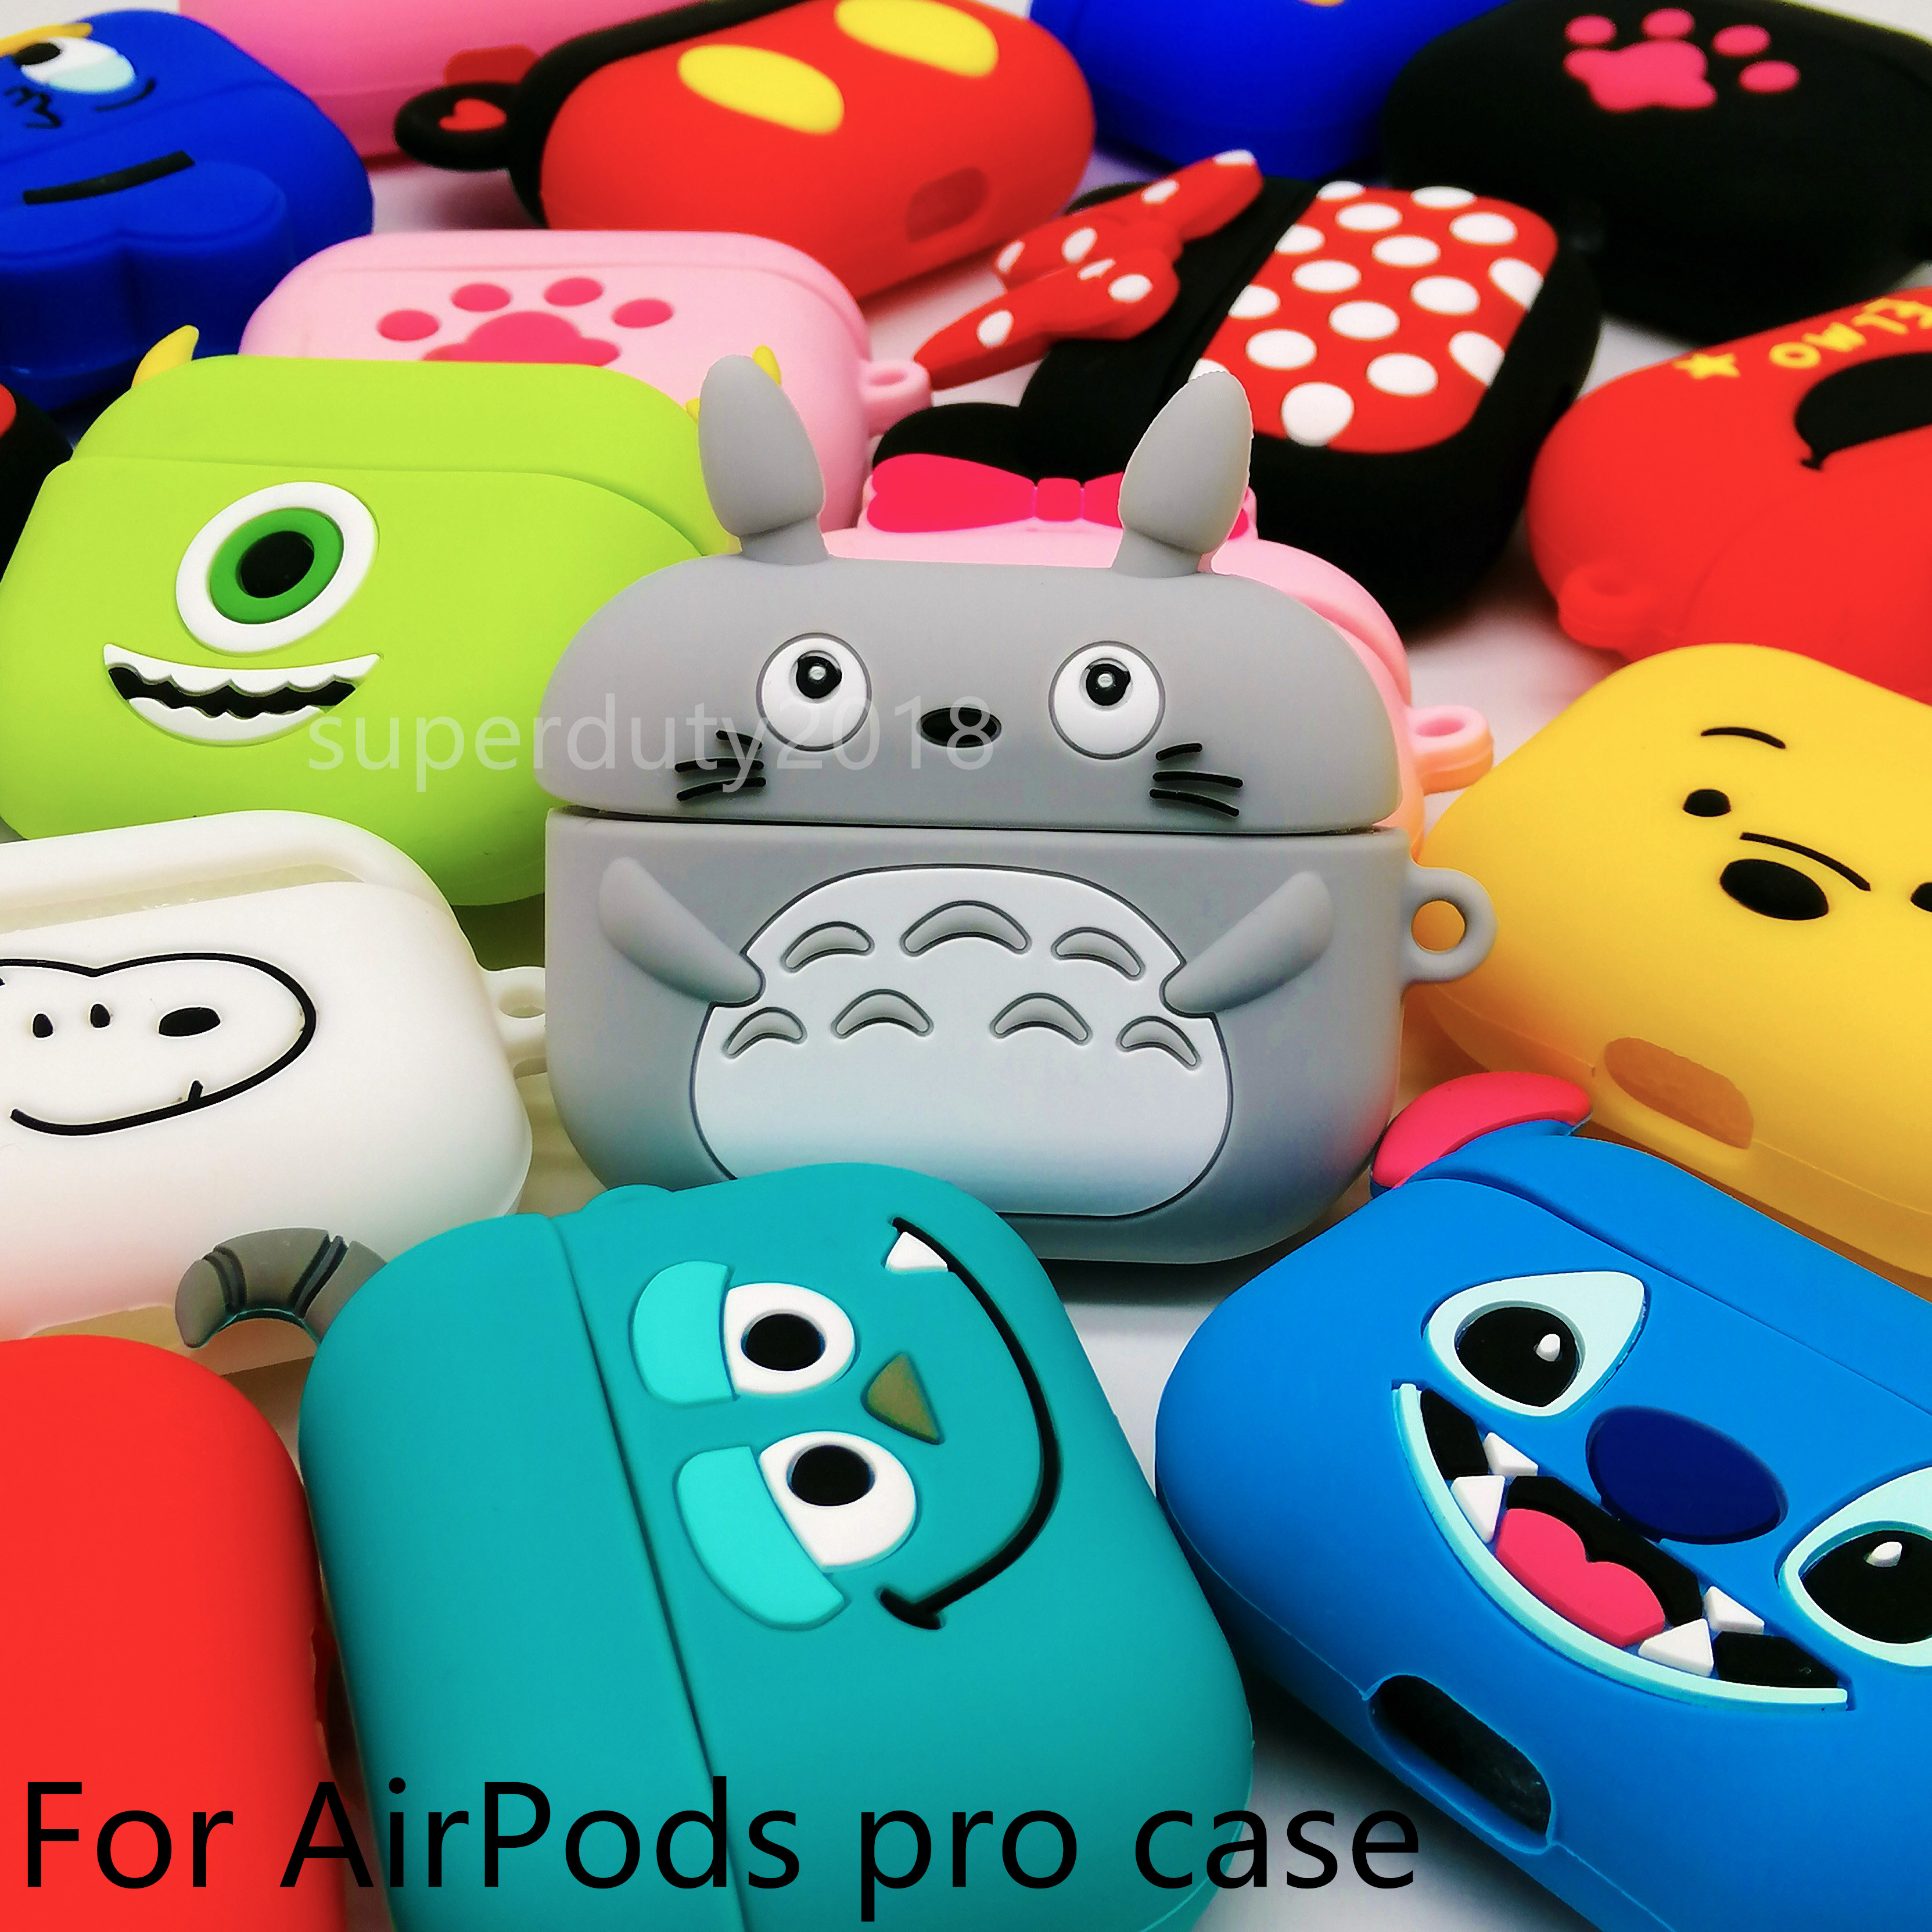 Cartoon Cute Case For Airpods Pro Case Wireless For Airpods Pro 3 Case Cover For AirPods Pro Silicone Headphones Case Protective